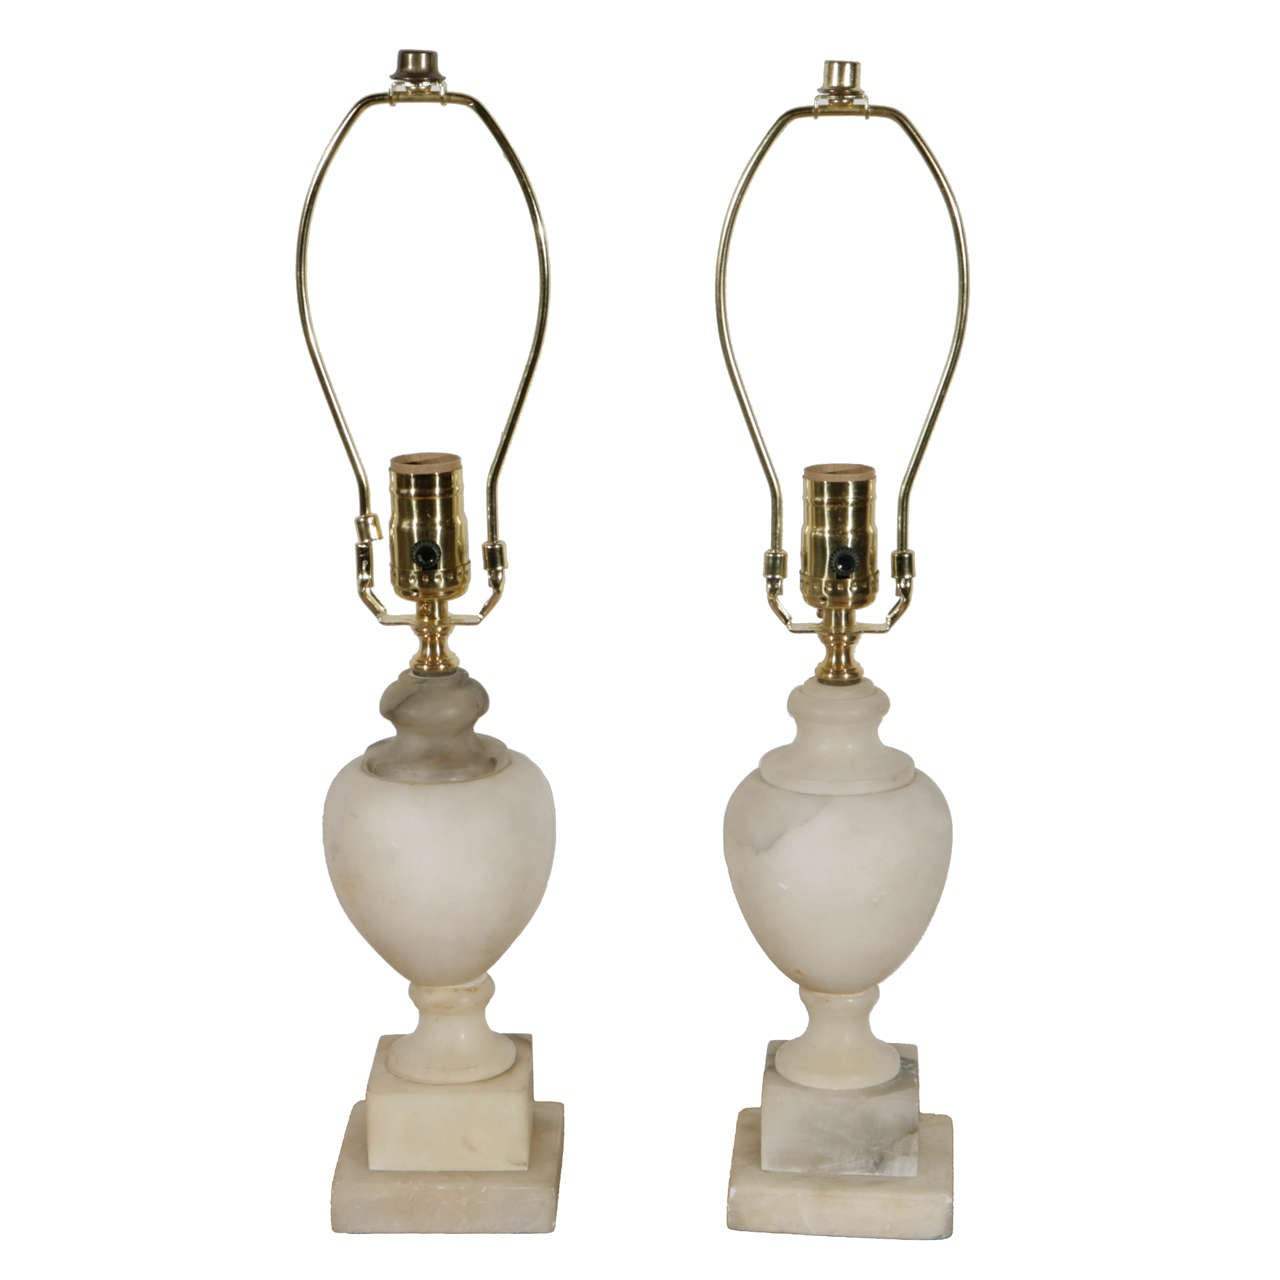 Pair of Small Alabaster Urn Accent Lamps 1